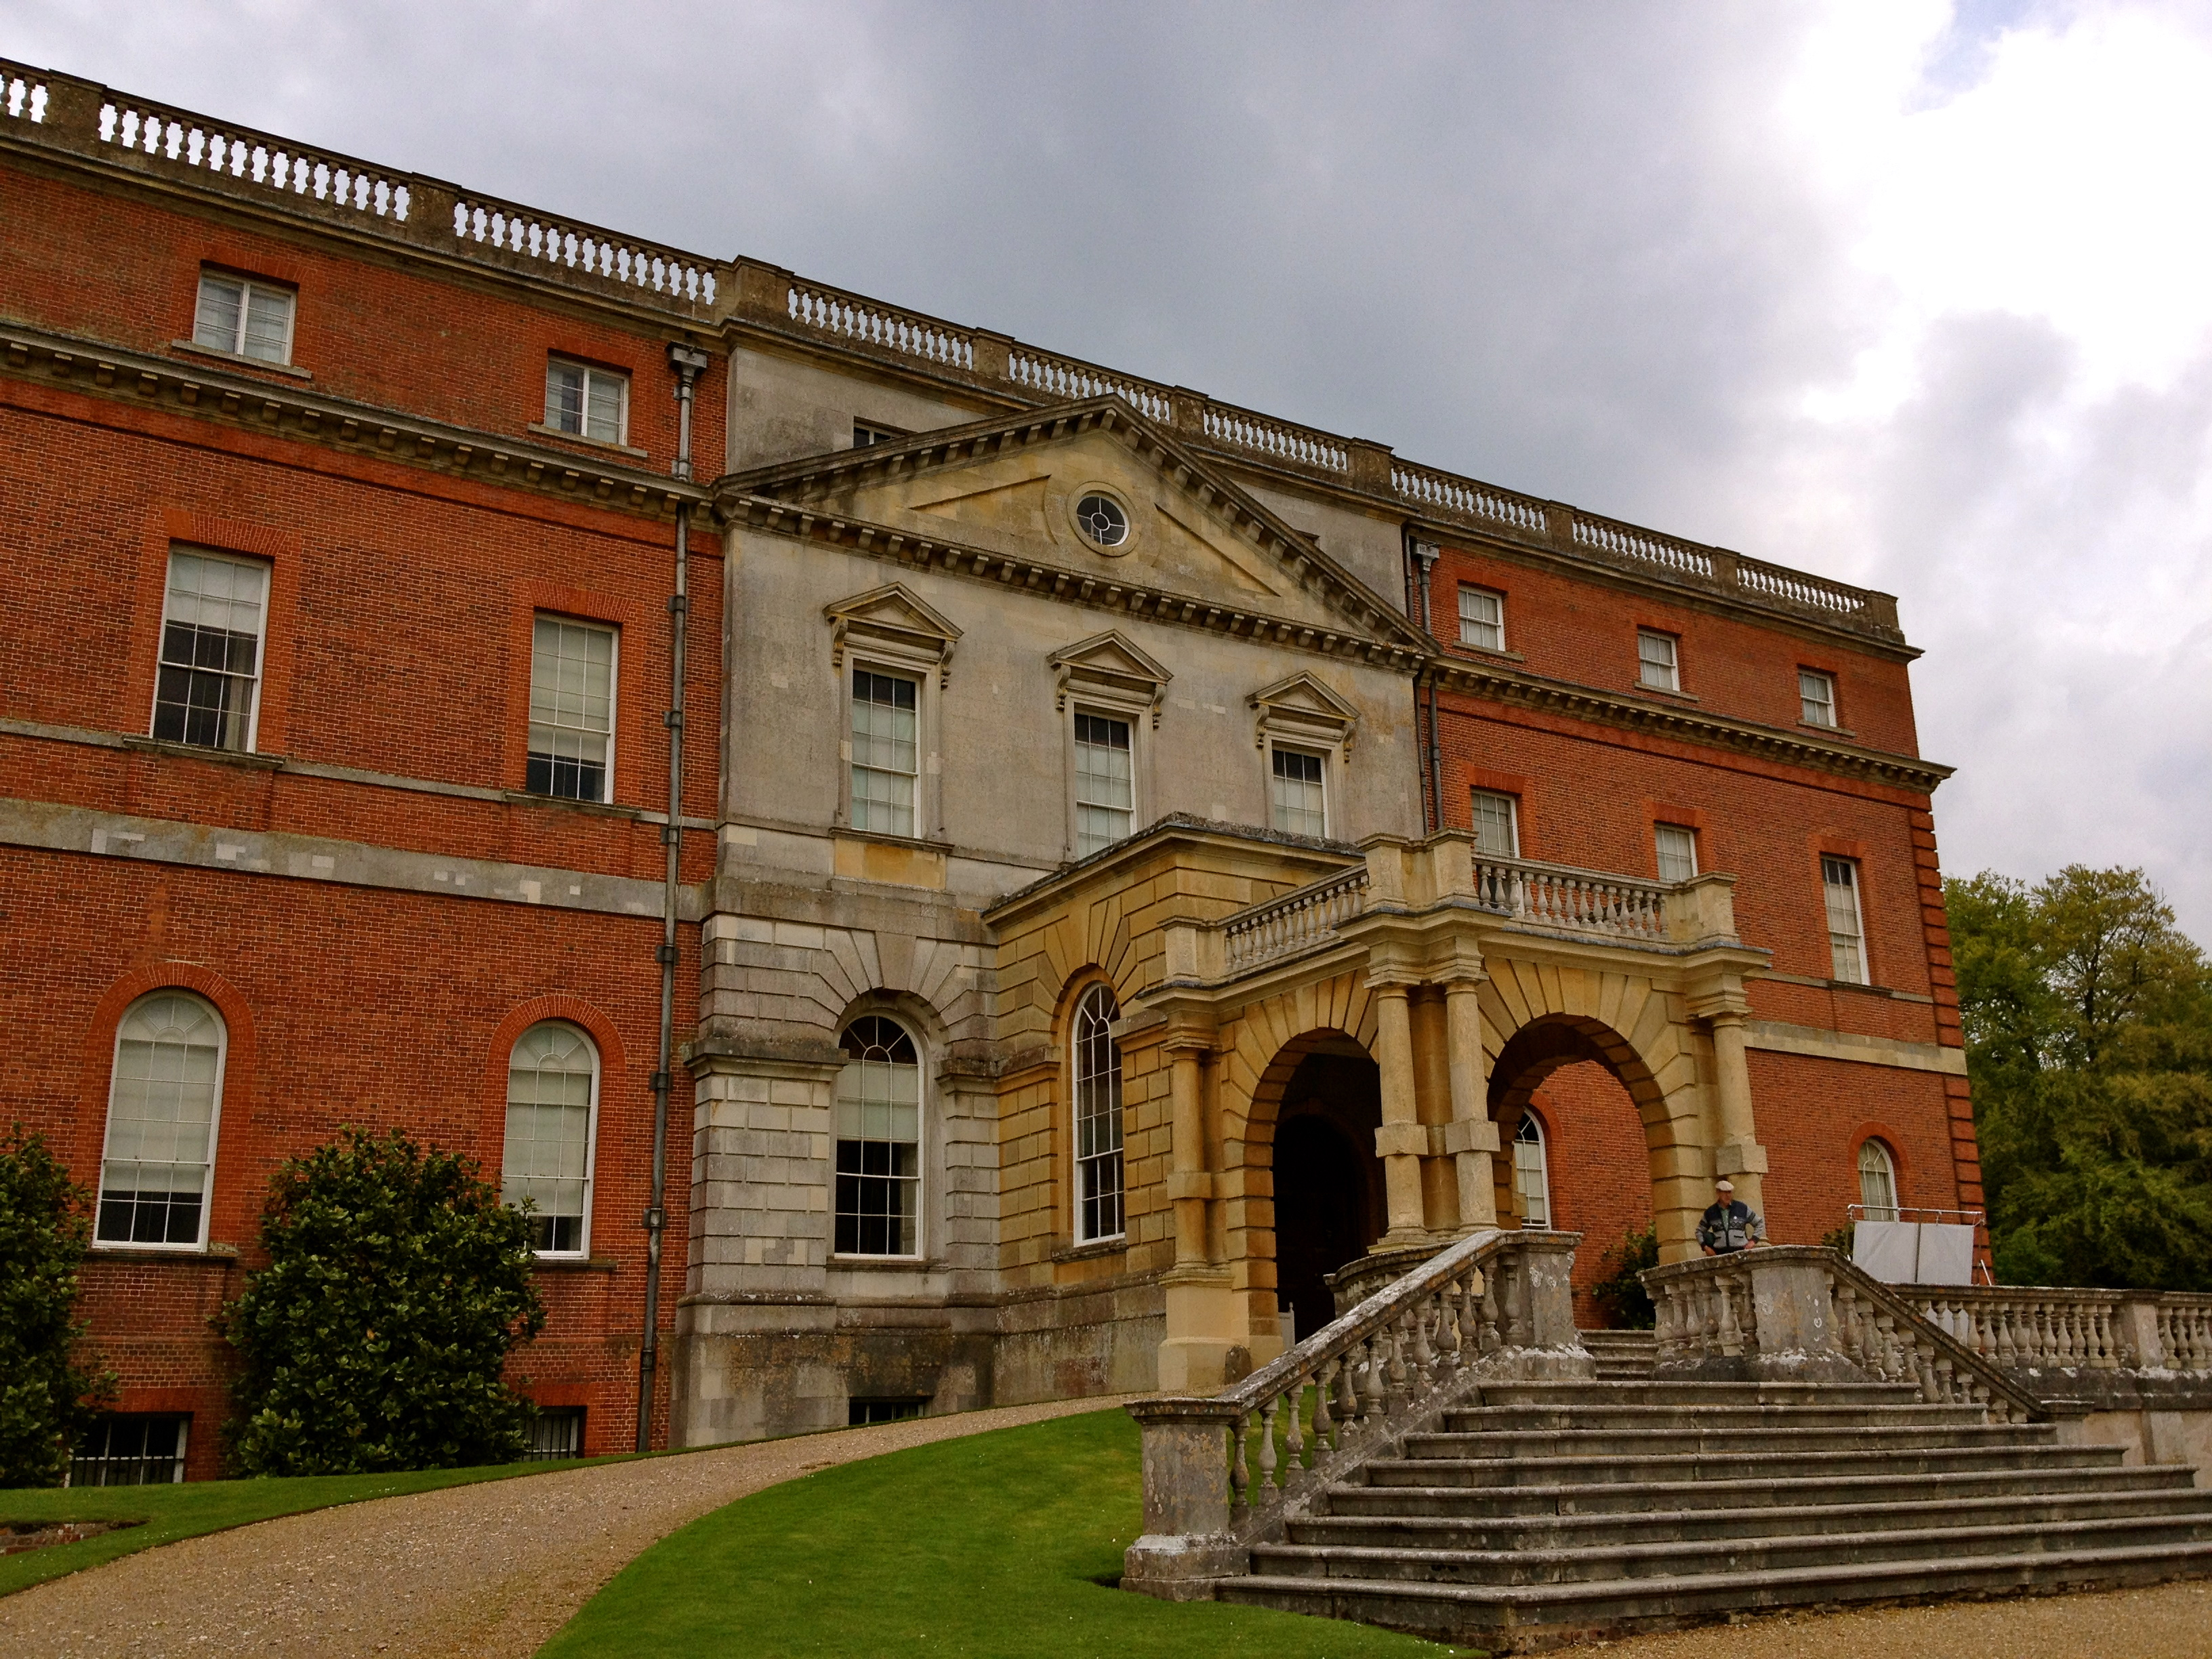 Clandon Park before the fire